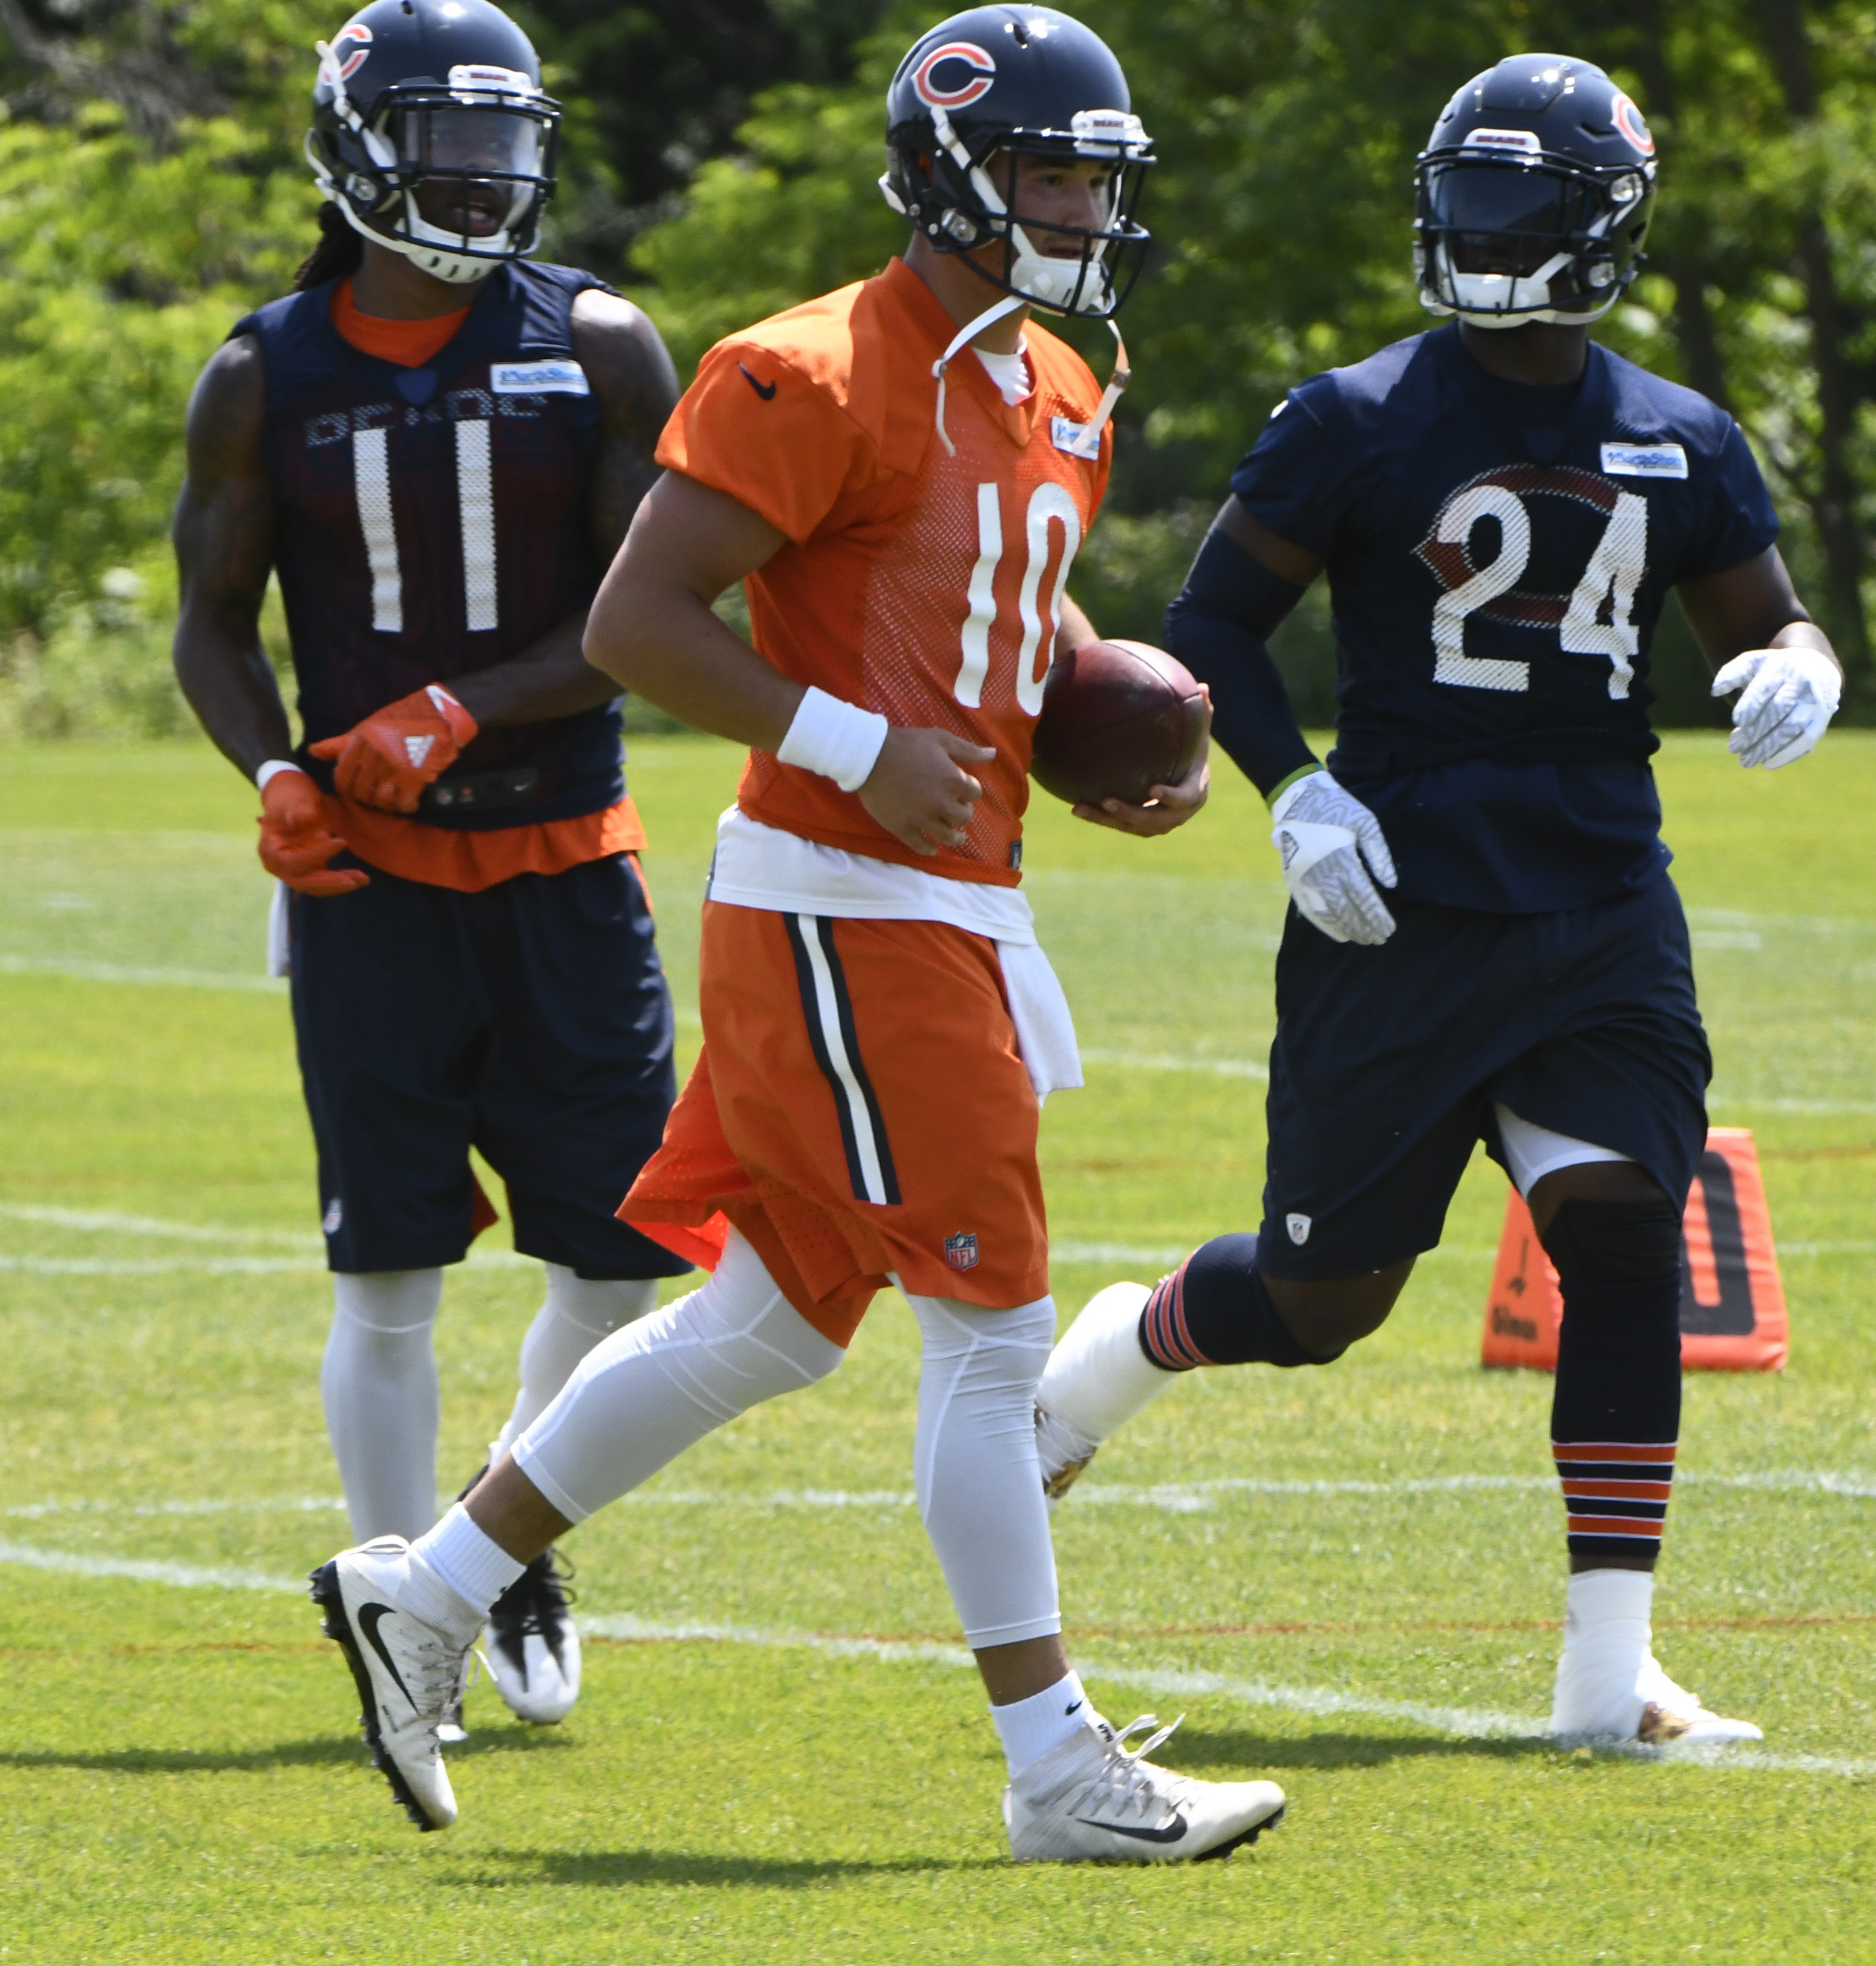 Chicago Bears Roster: Chicago Bears: Ranking The Most Important Players For The